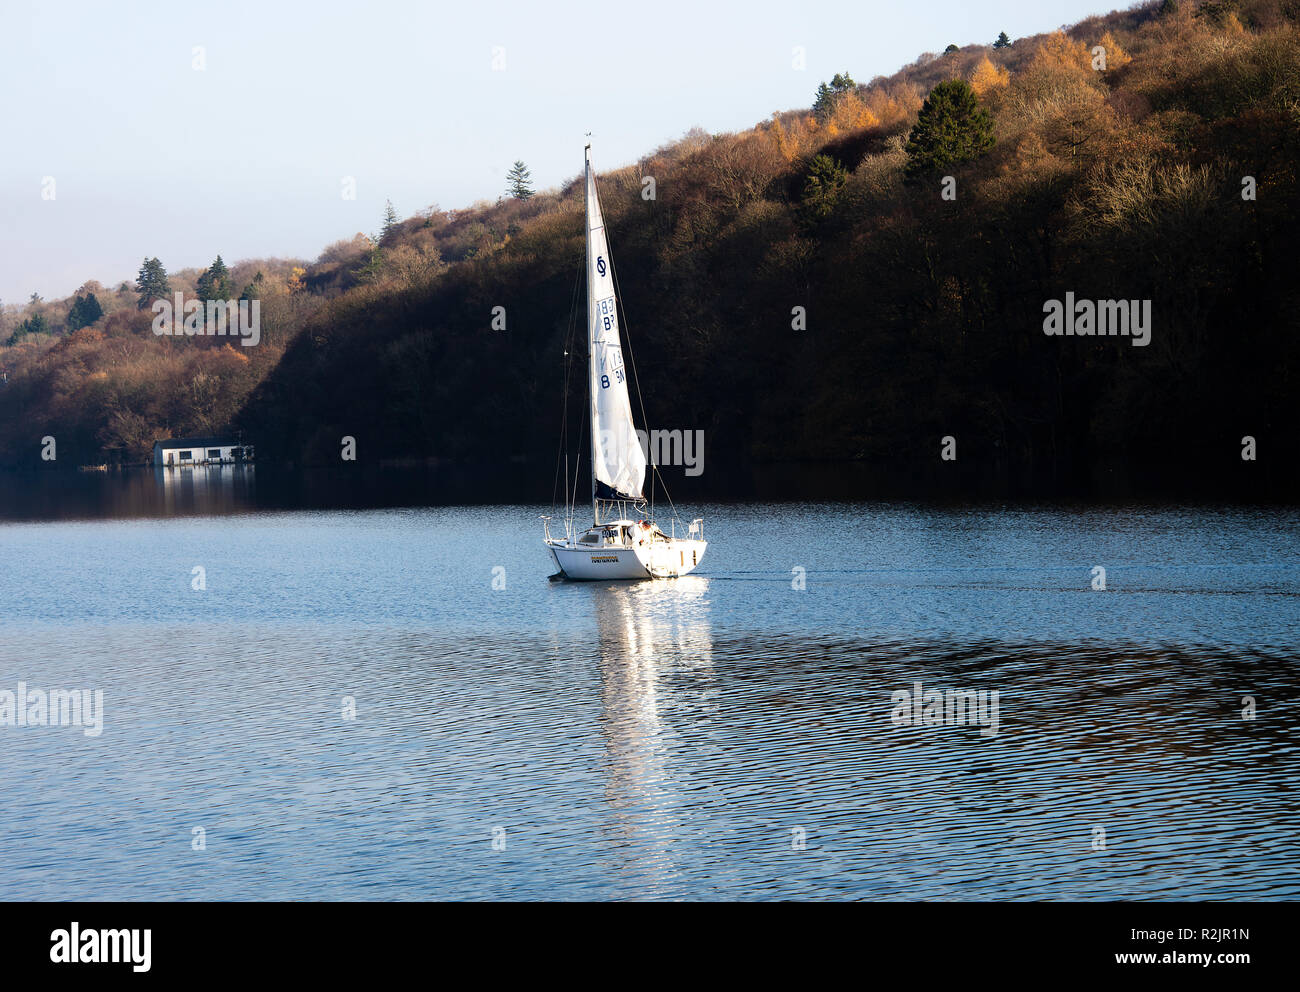 The Yacht Tormentor Underway with Flapping Mainsail Sailing on Lake Windermere near Bowness Lake District National Park Cumbria England UK - Stock Image